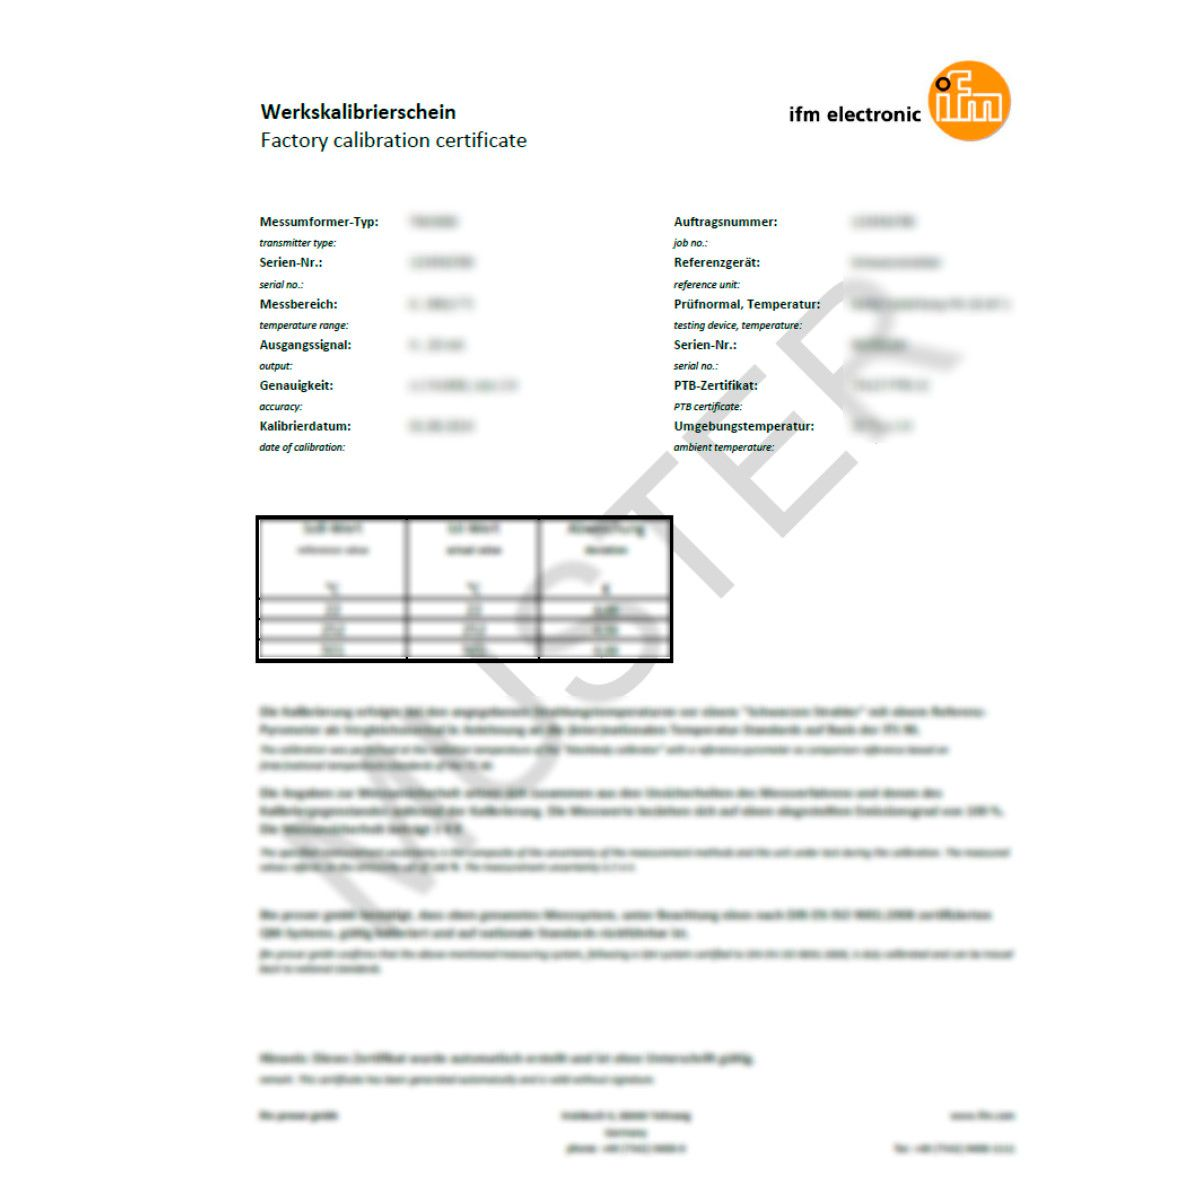 Zc0016 iso calibration certificate for temperature sensors 3 zc0016 iso calibration certificate for temperature sensors 3 point ifm electronic yelopaper Choice Image